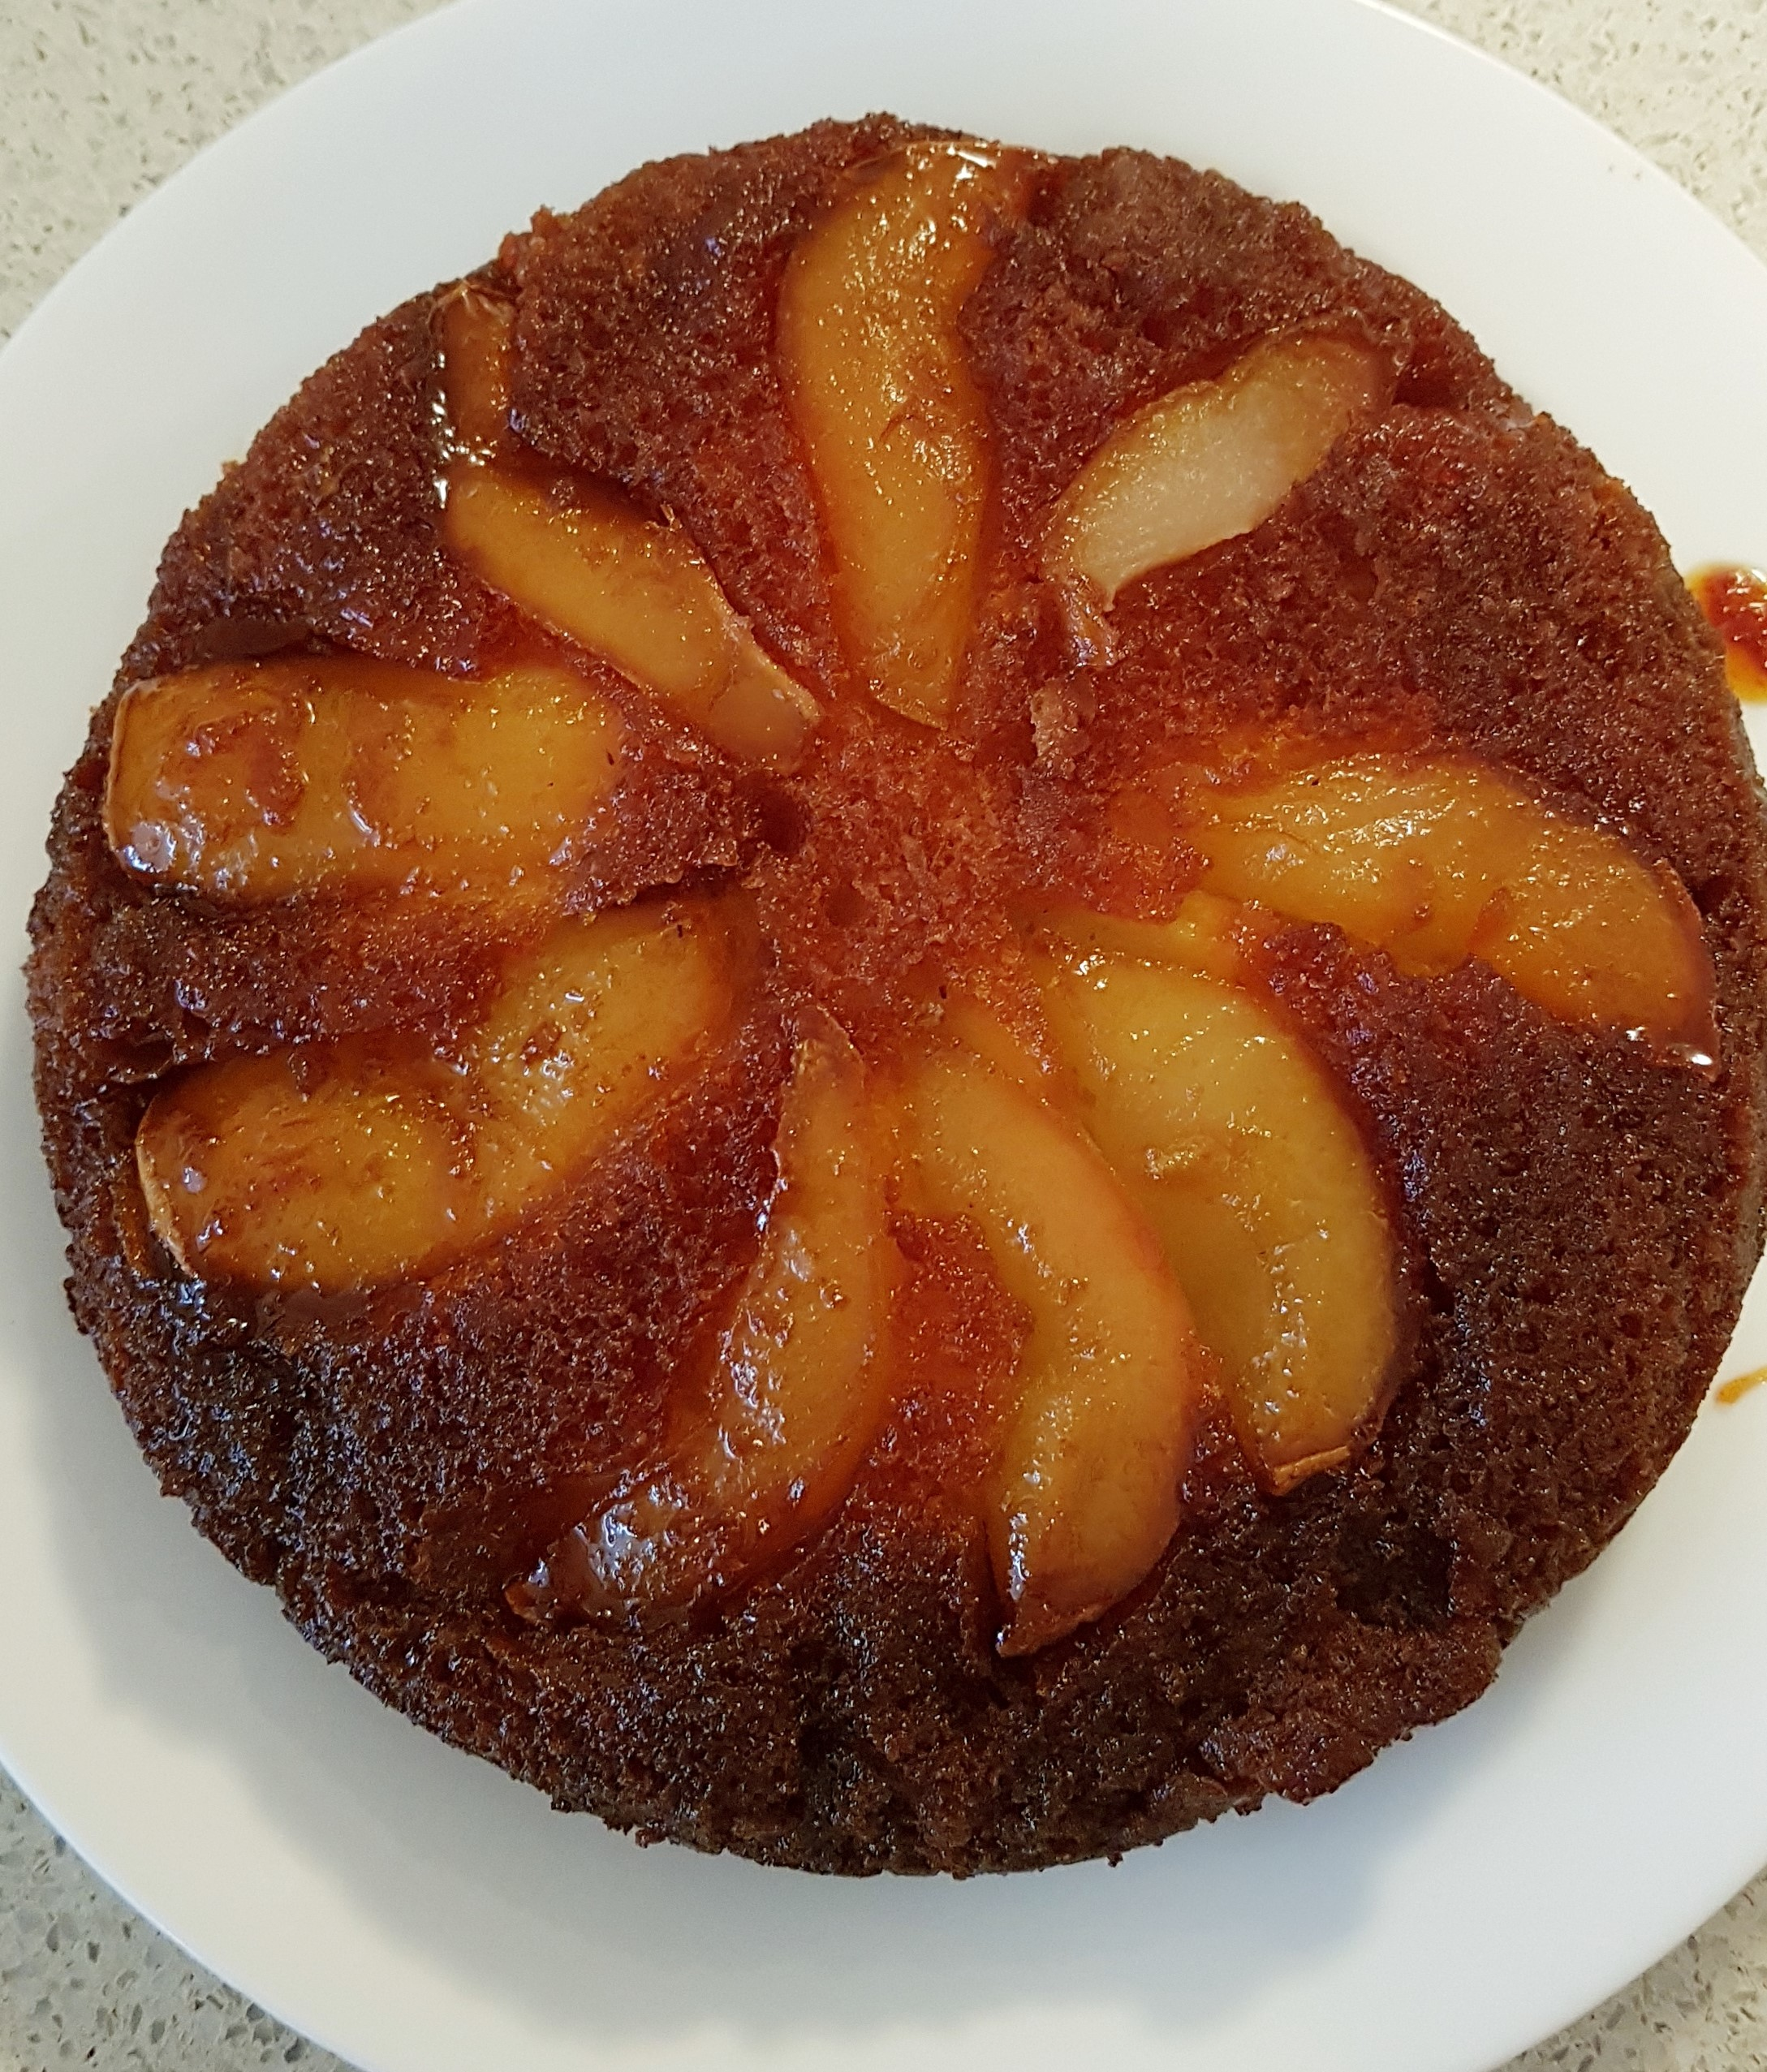 Pear and Caramel Upside Down Cake